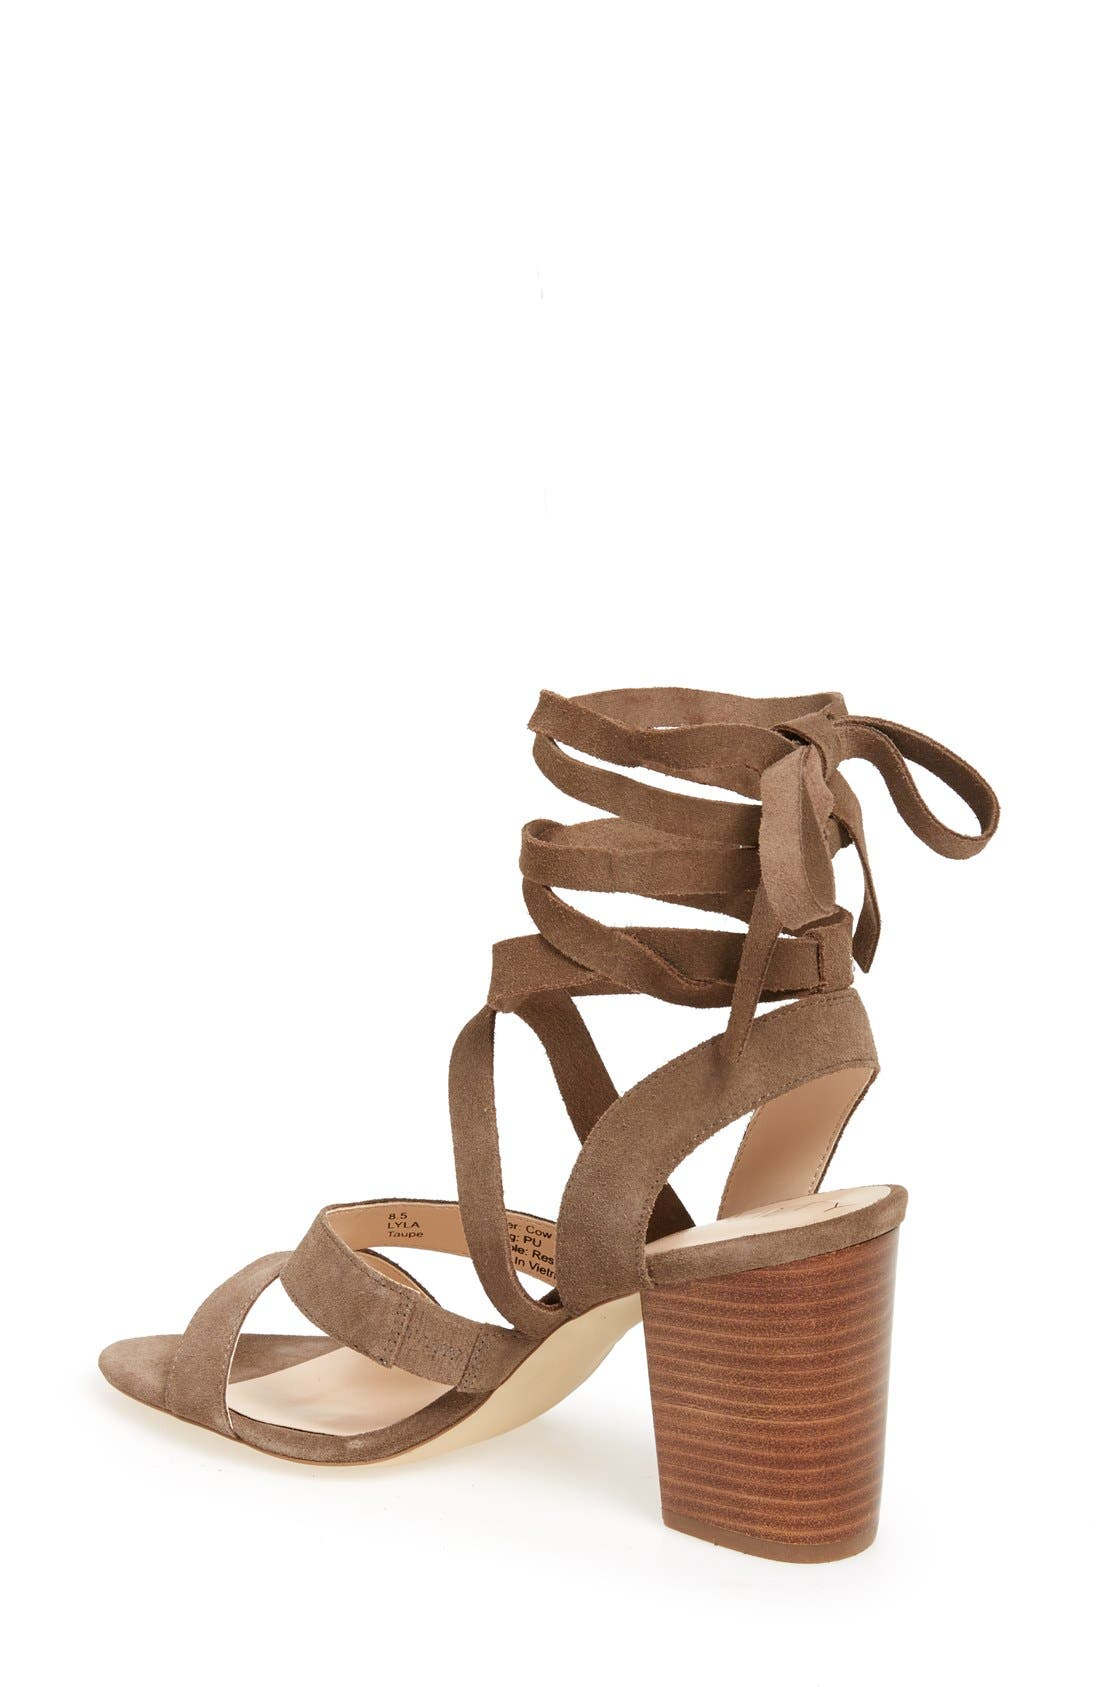 'Lyla' Lace-Up Sandal,                             Alternate thumbnail 2, color,                             Taupe